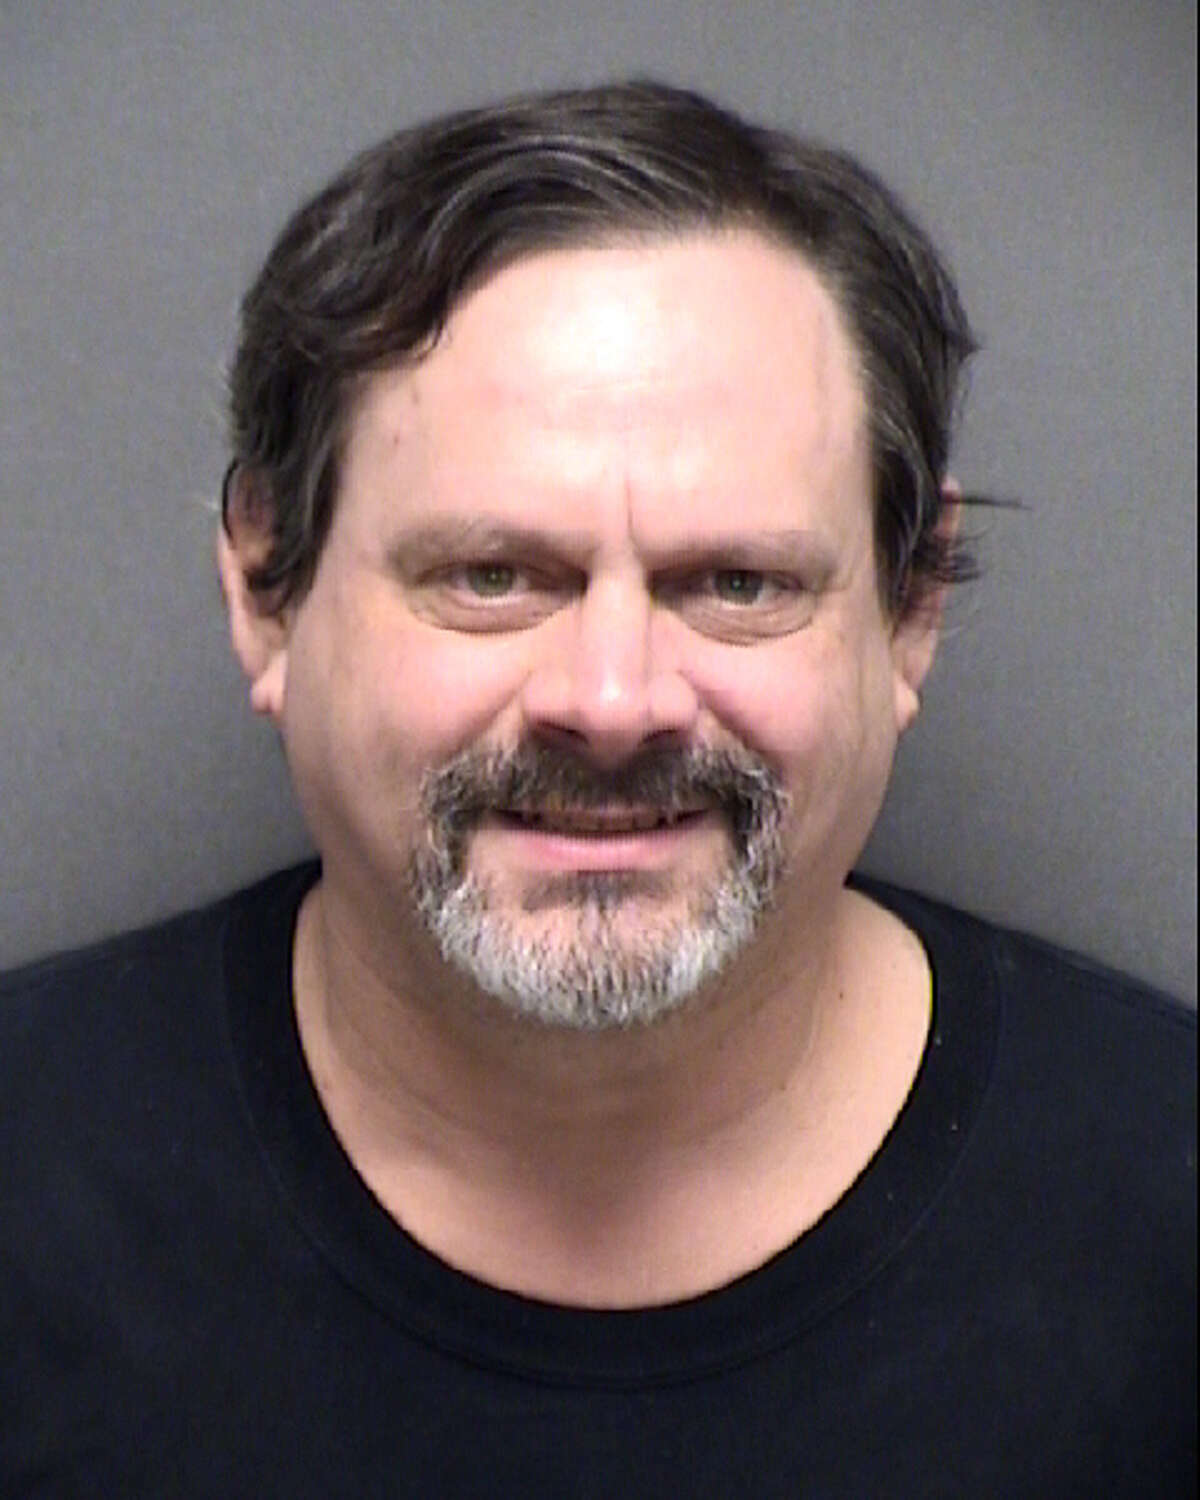 Jerry Virden was charged with driving while intoxicated, third or more, on Feb. 15, 2019.